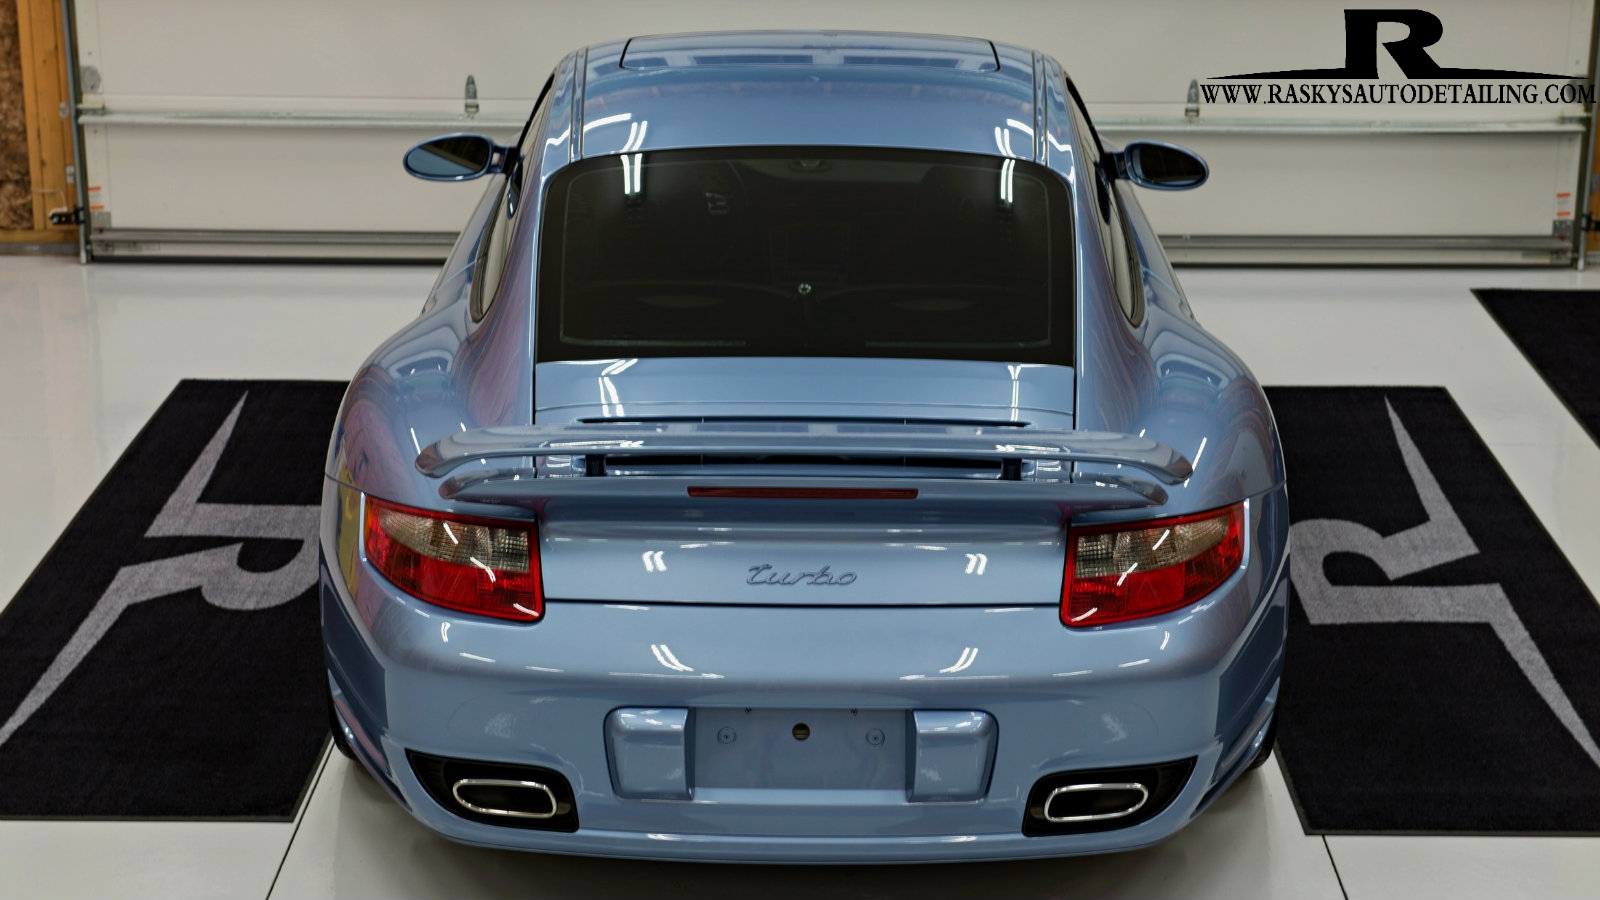 This Turbo 911 is ready to turn heads and light up the tires after a ceramic nano coating by Raskys Auto Detailing Minneapolis